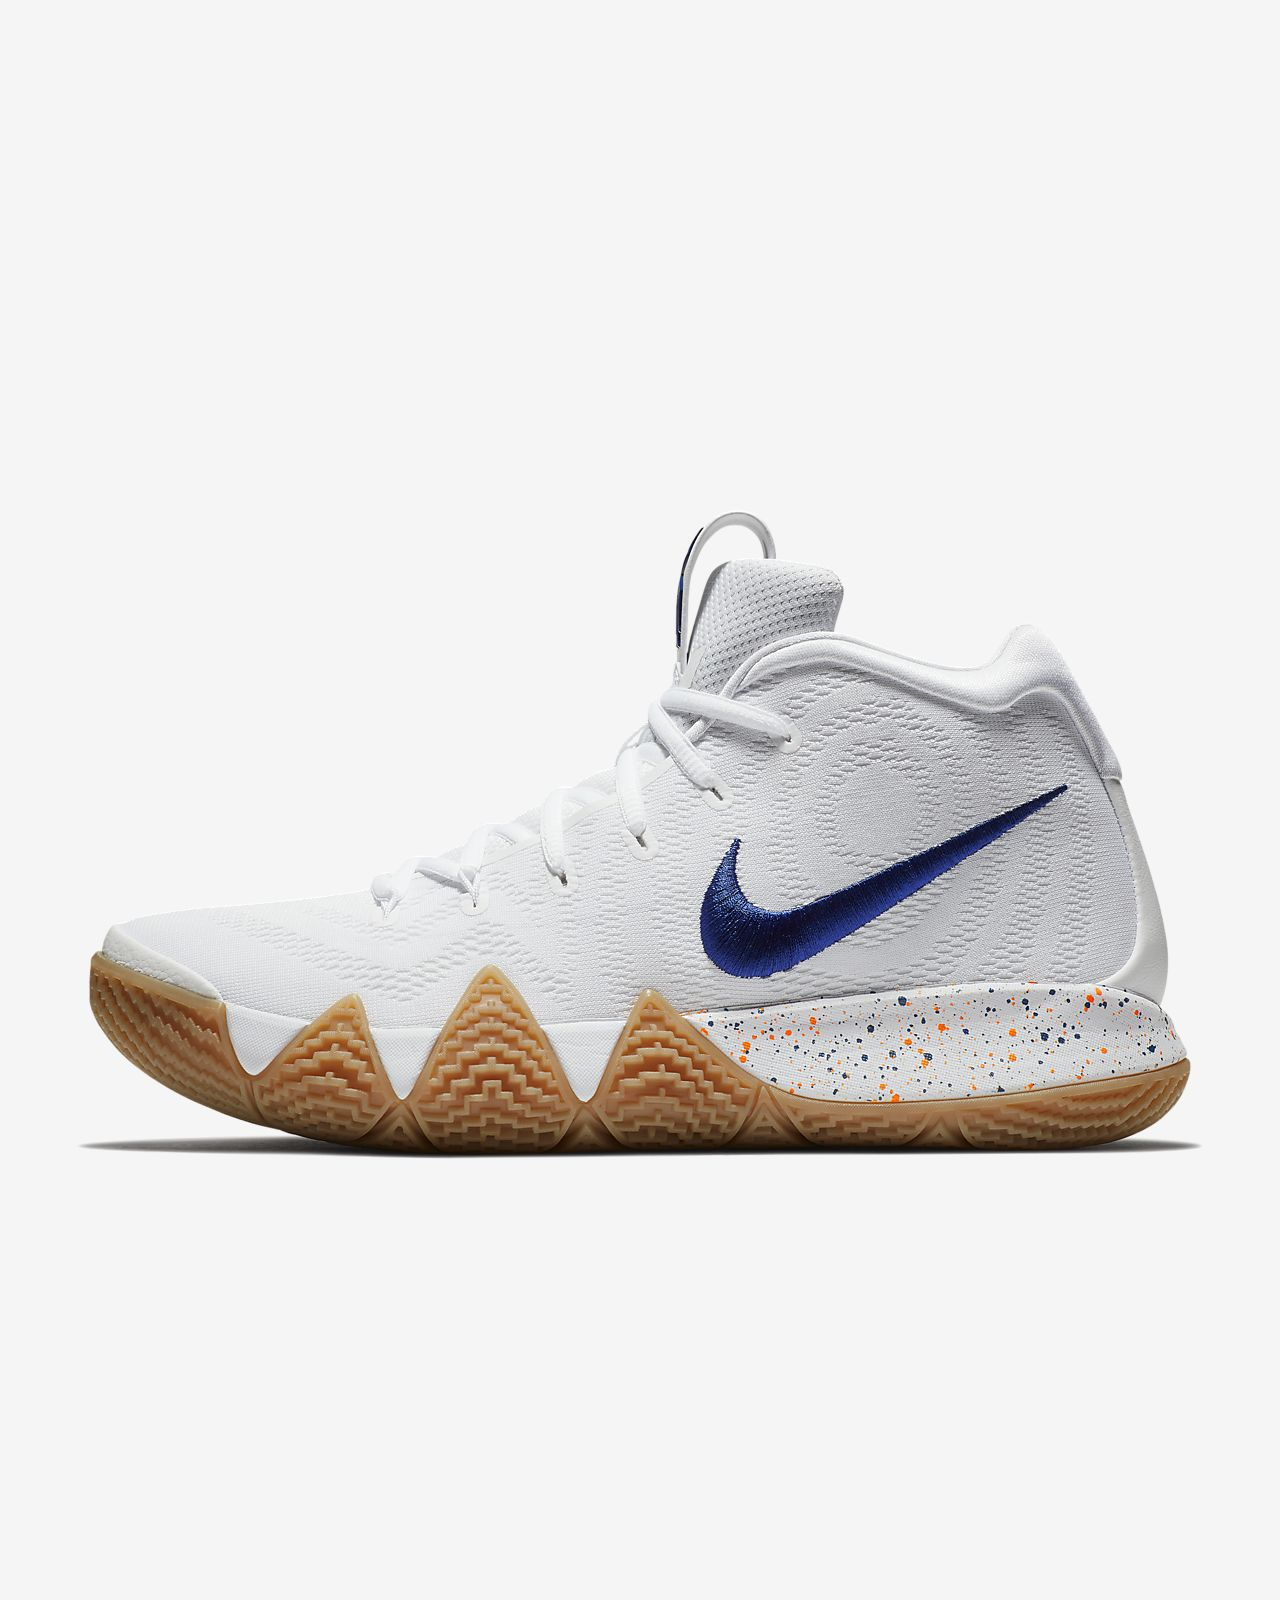 huge discount 6847b d99f3 Kyrie 4 'Uncle Drew' Basketball Shoe. Nike.com VN